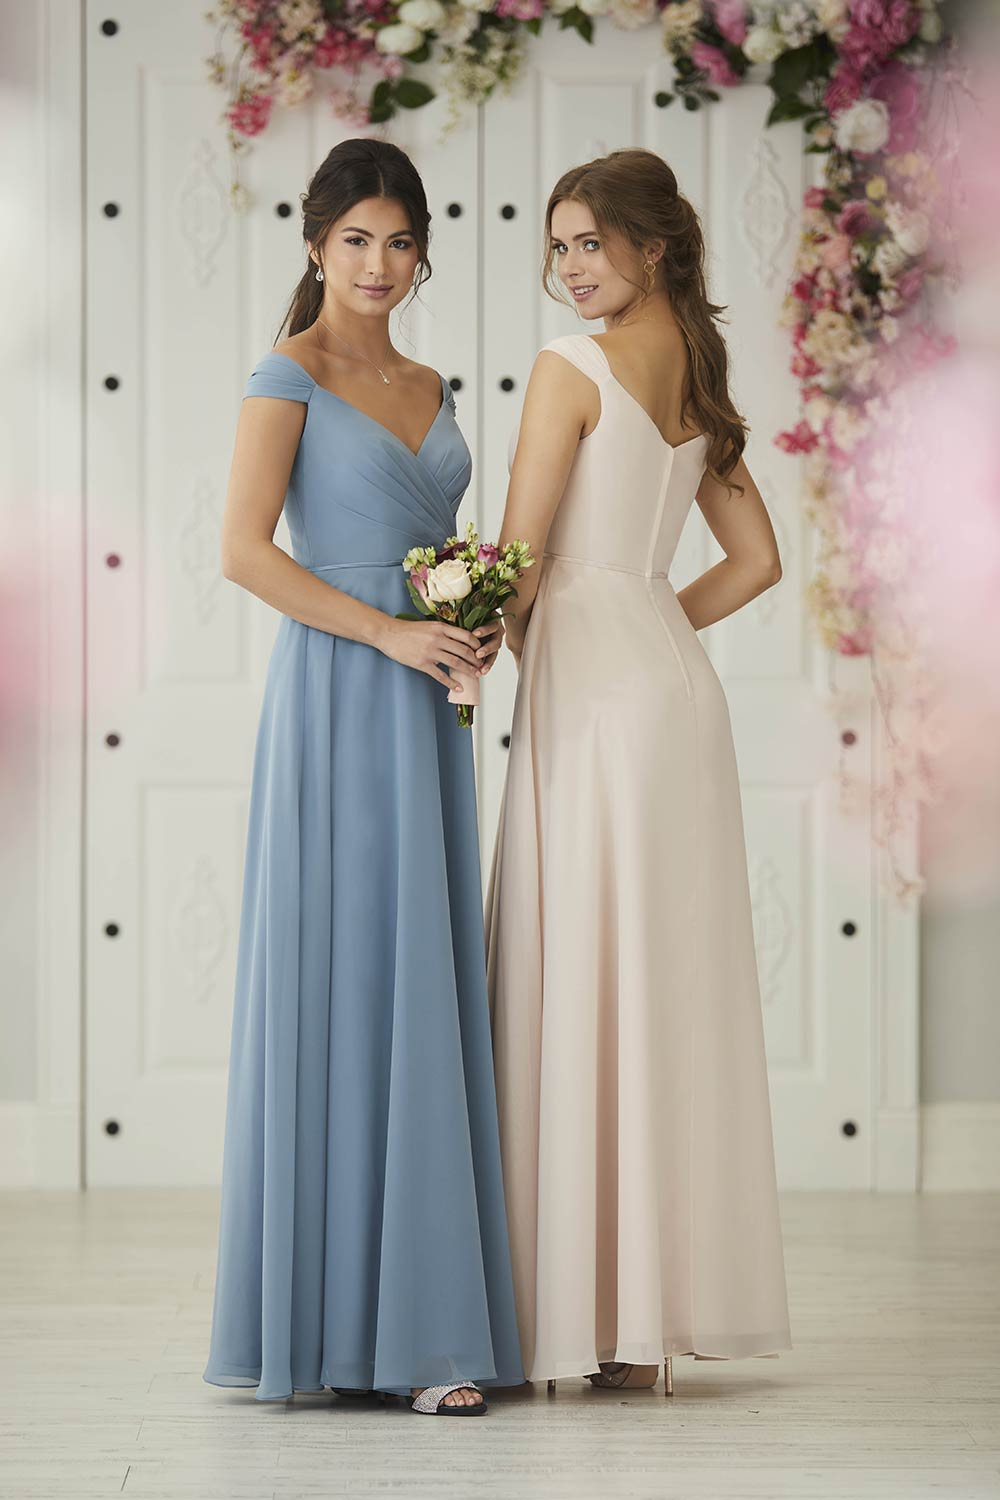 bridesmaid-dresses-jacquelin-bridals-canada-27289